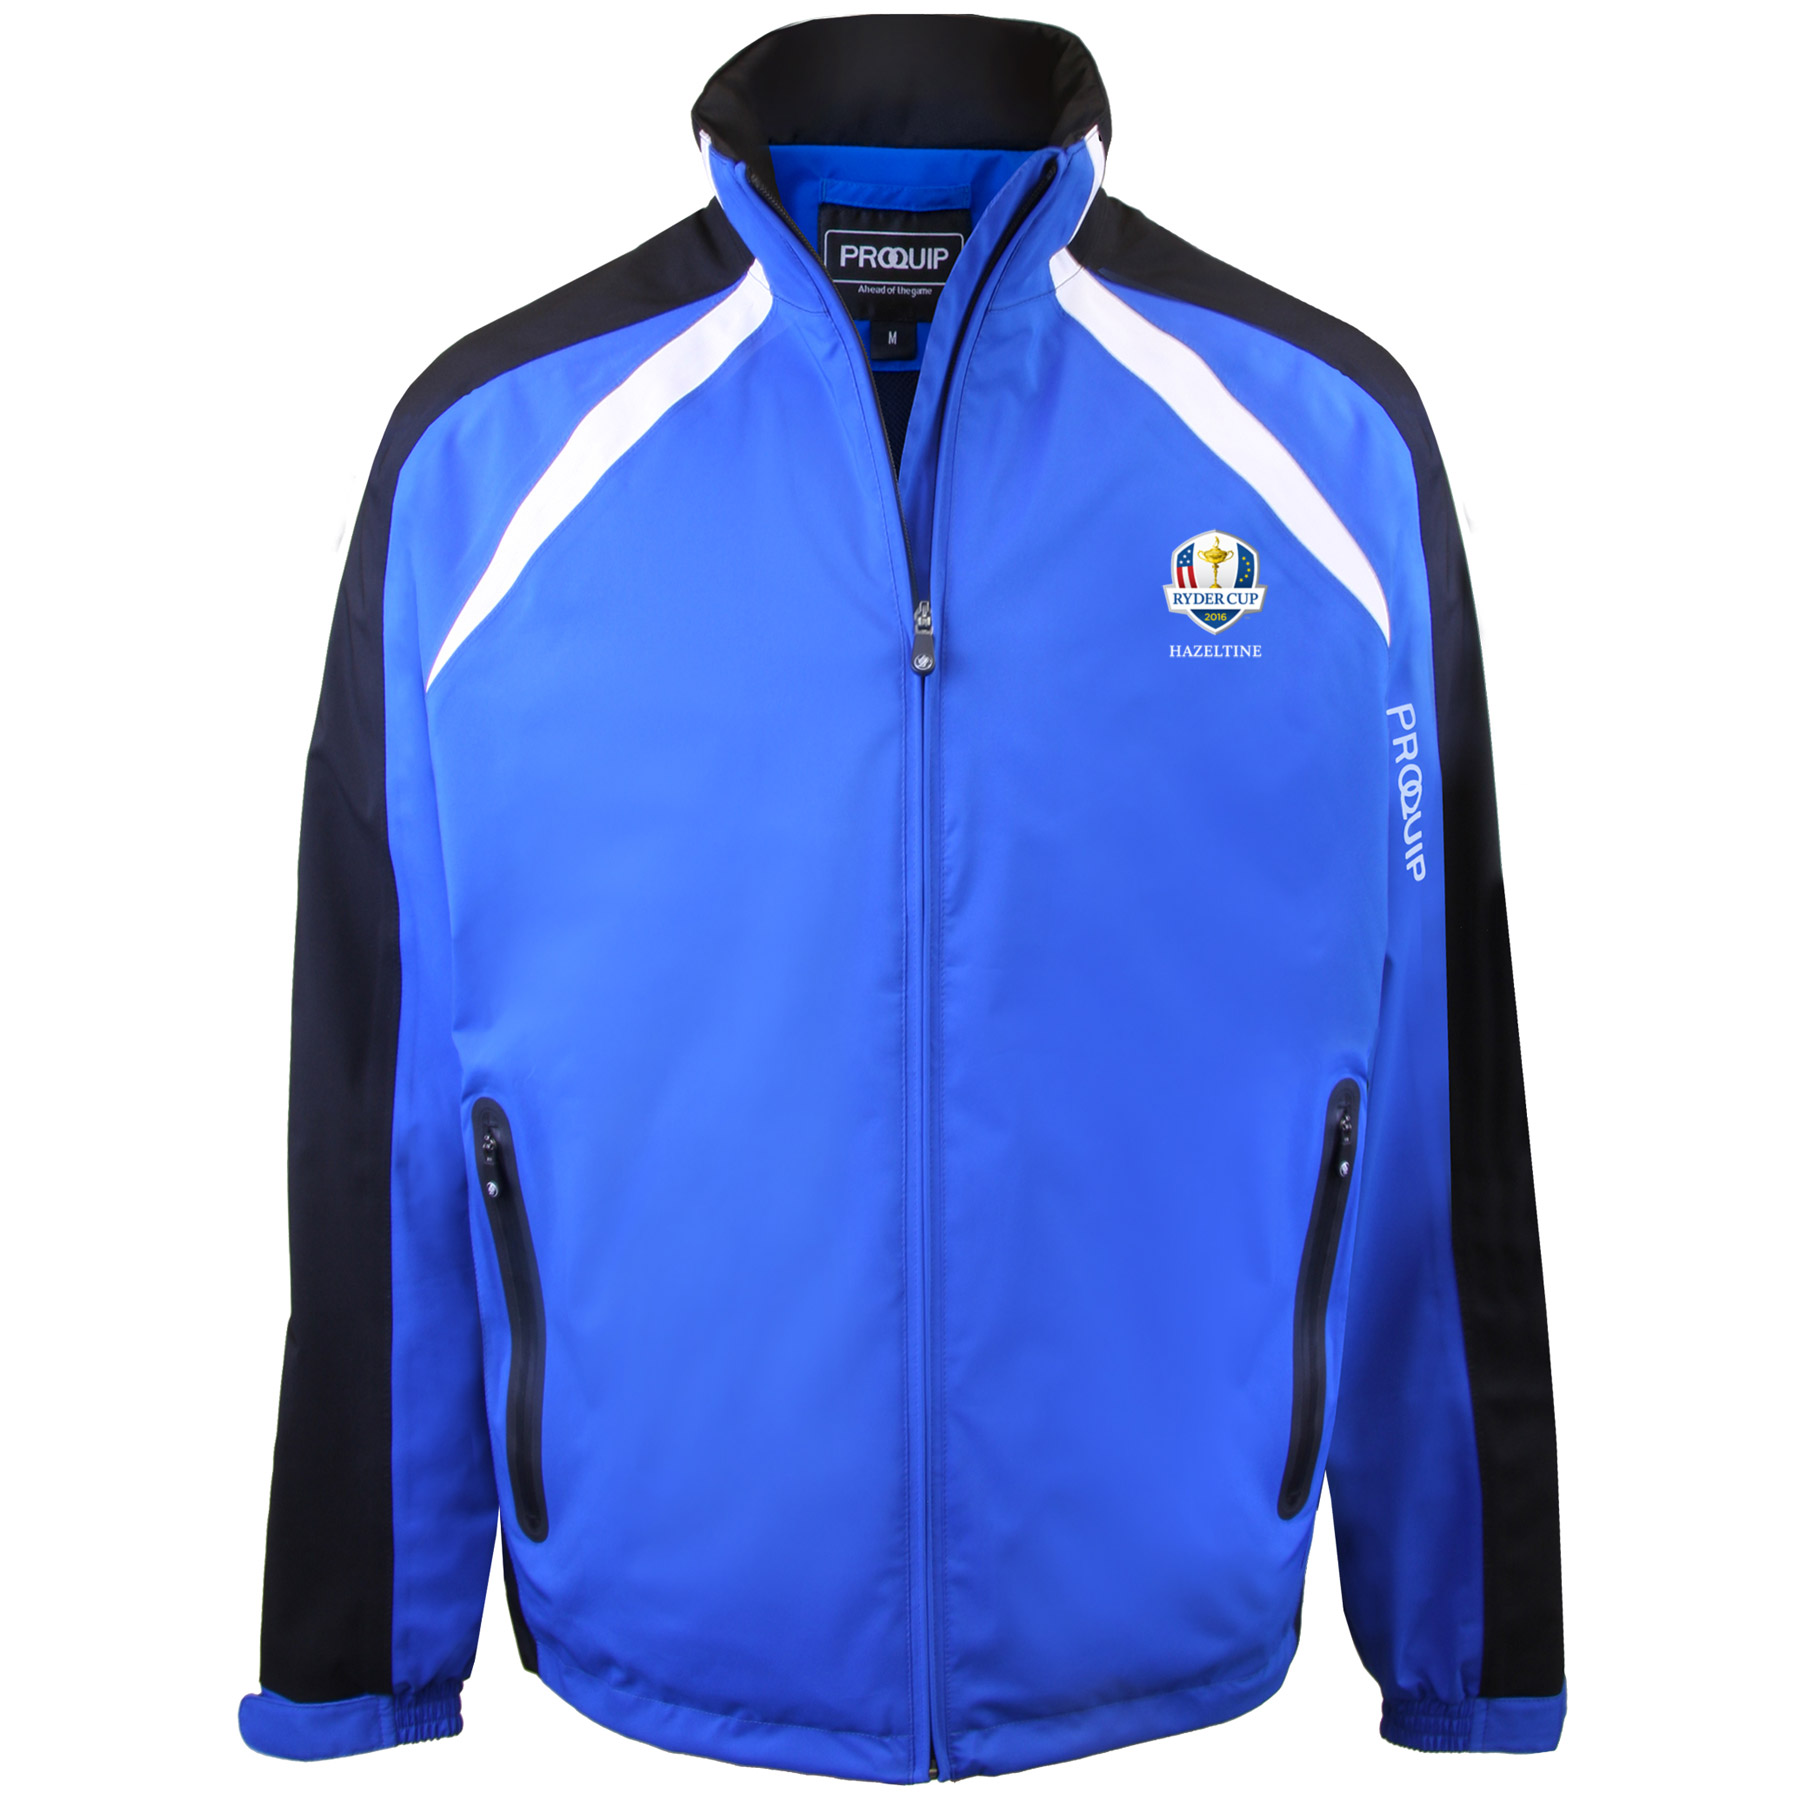 The 2016 Ryder Cup Proquip Trophy Waterproof Jacket - Blue/Black/White